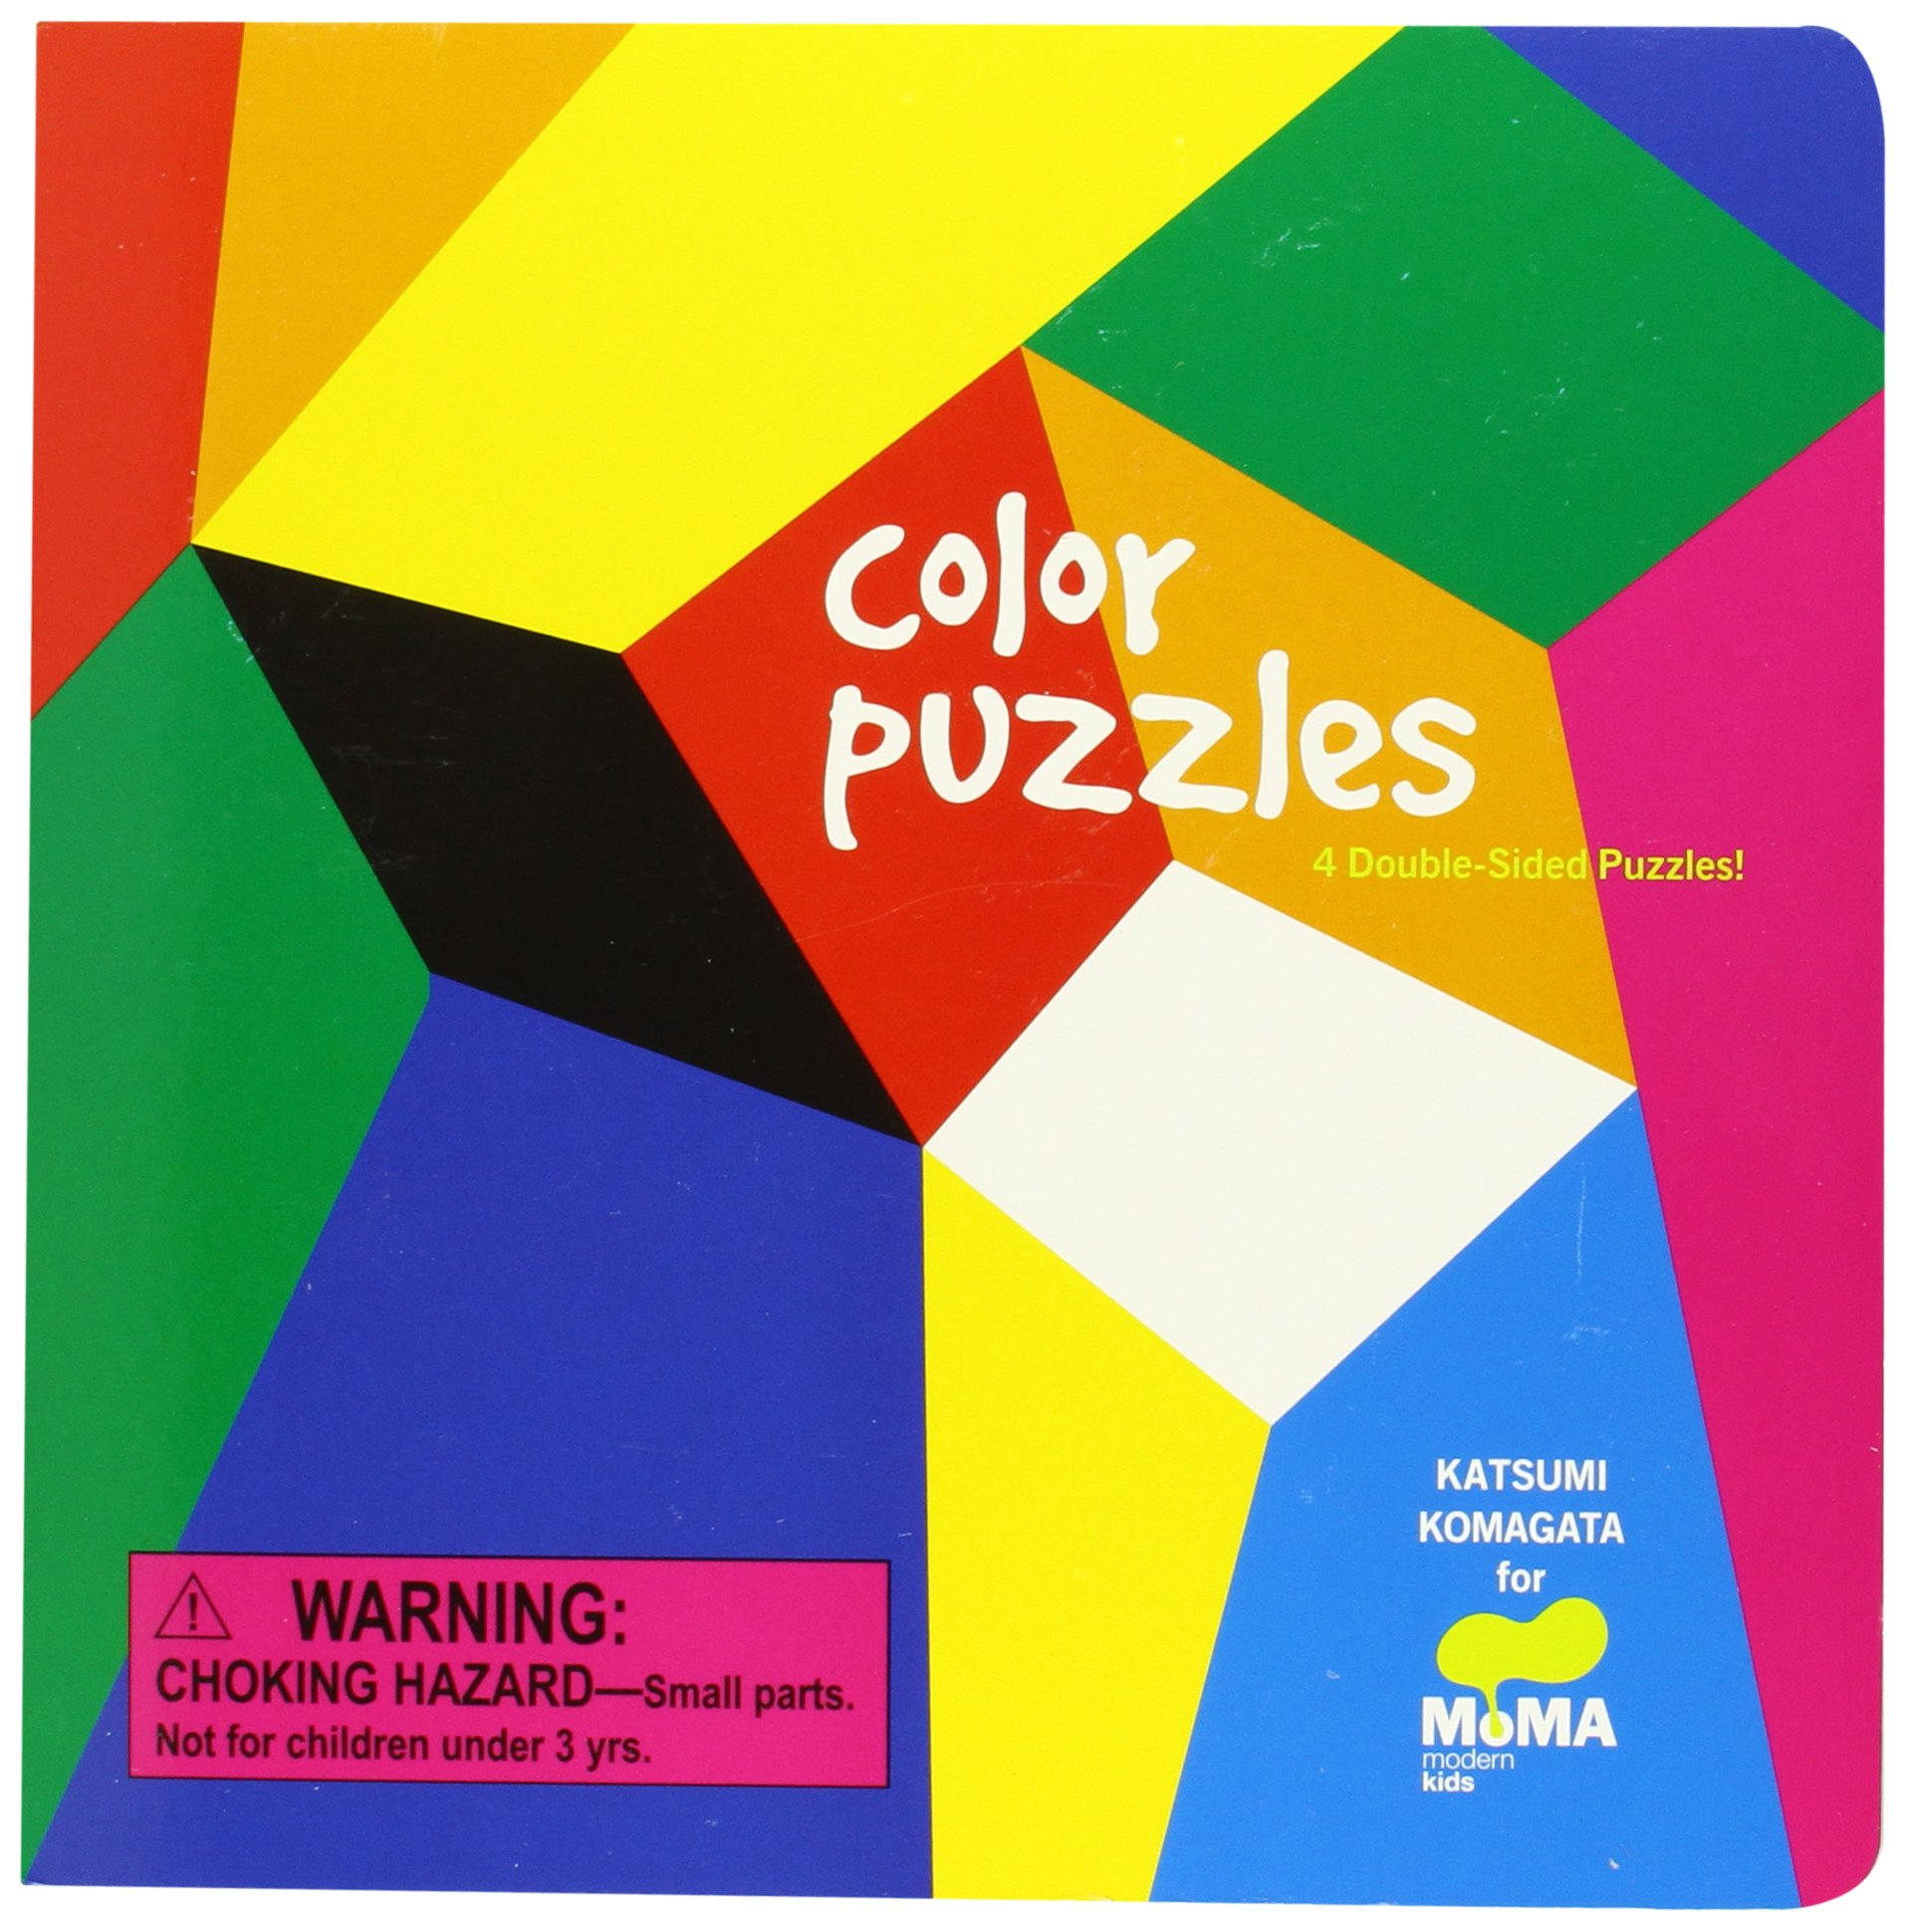 The color-play coloring book moma - Amazon Com Moma Color Puzzles 4 Double Sided Puzzles 9780811876896 Katsumi Komagata The Museum Of Modern Art Books